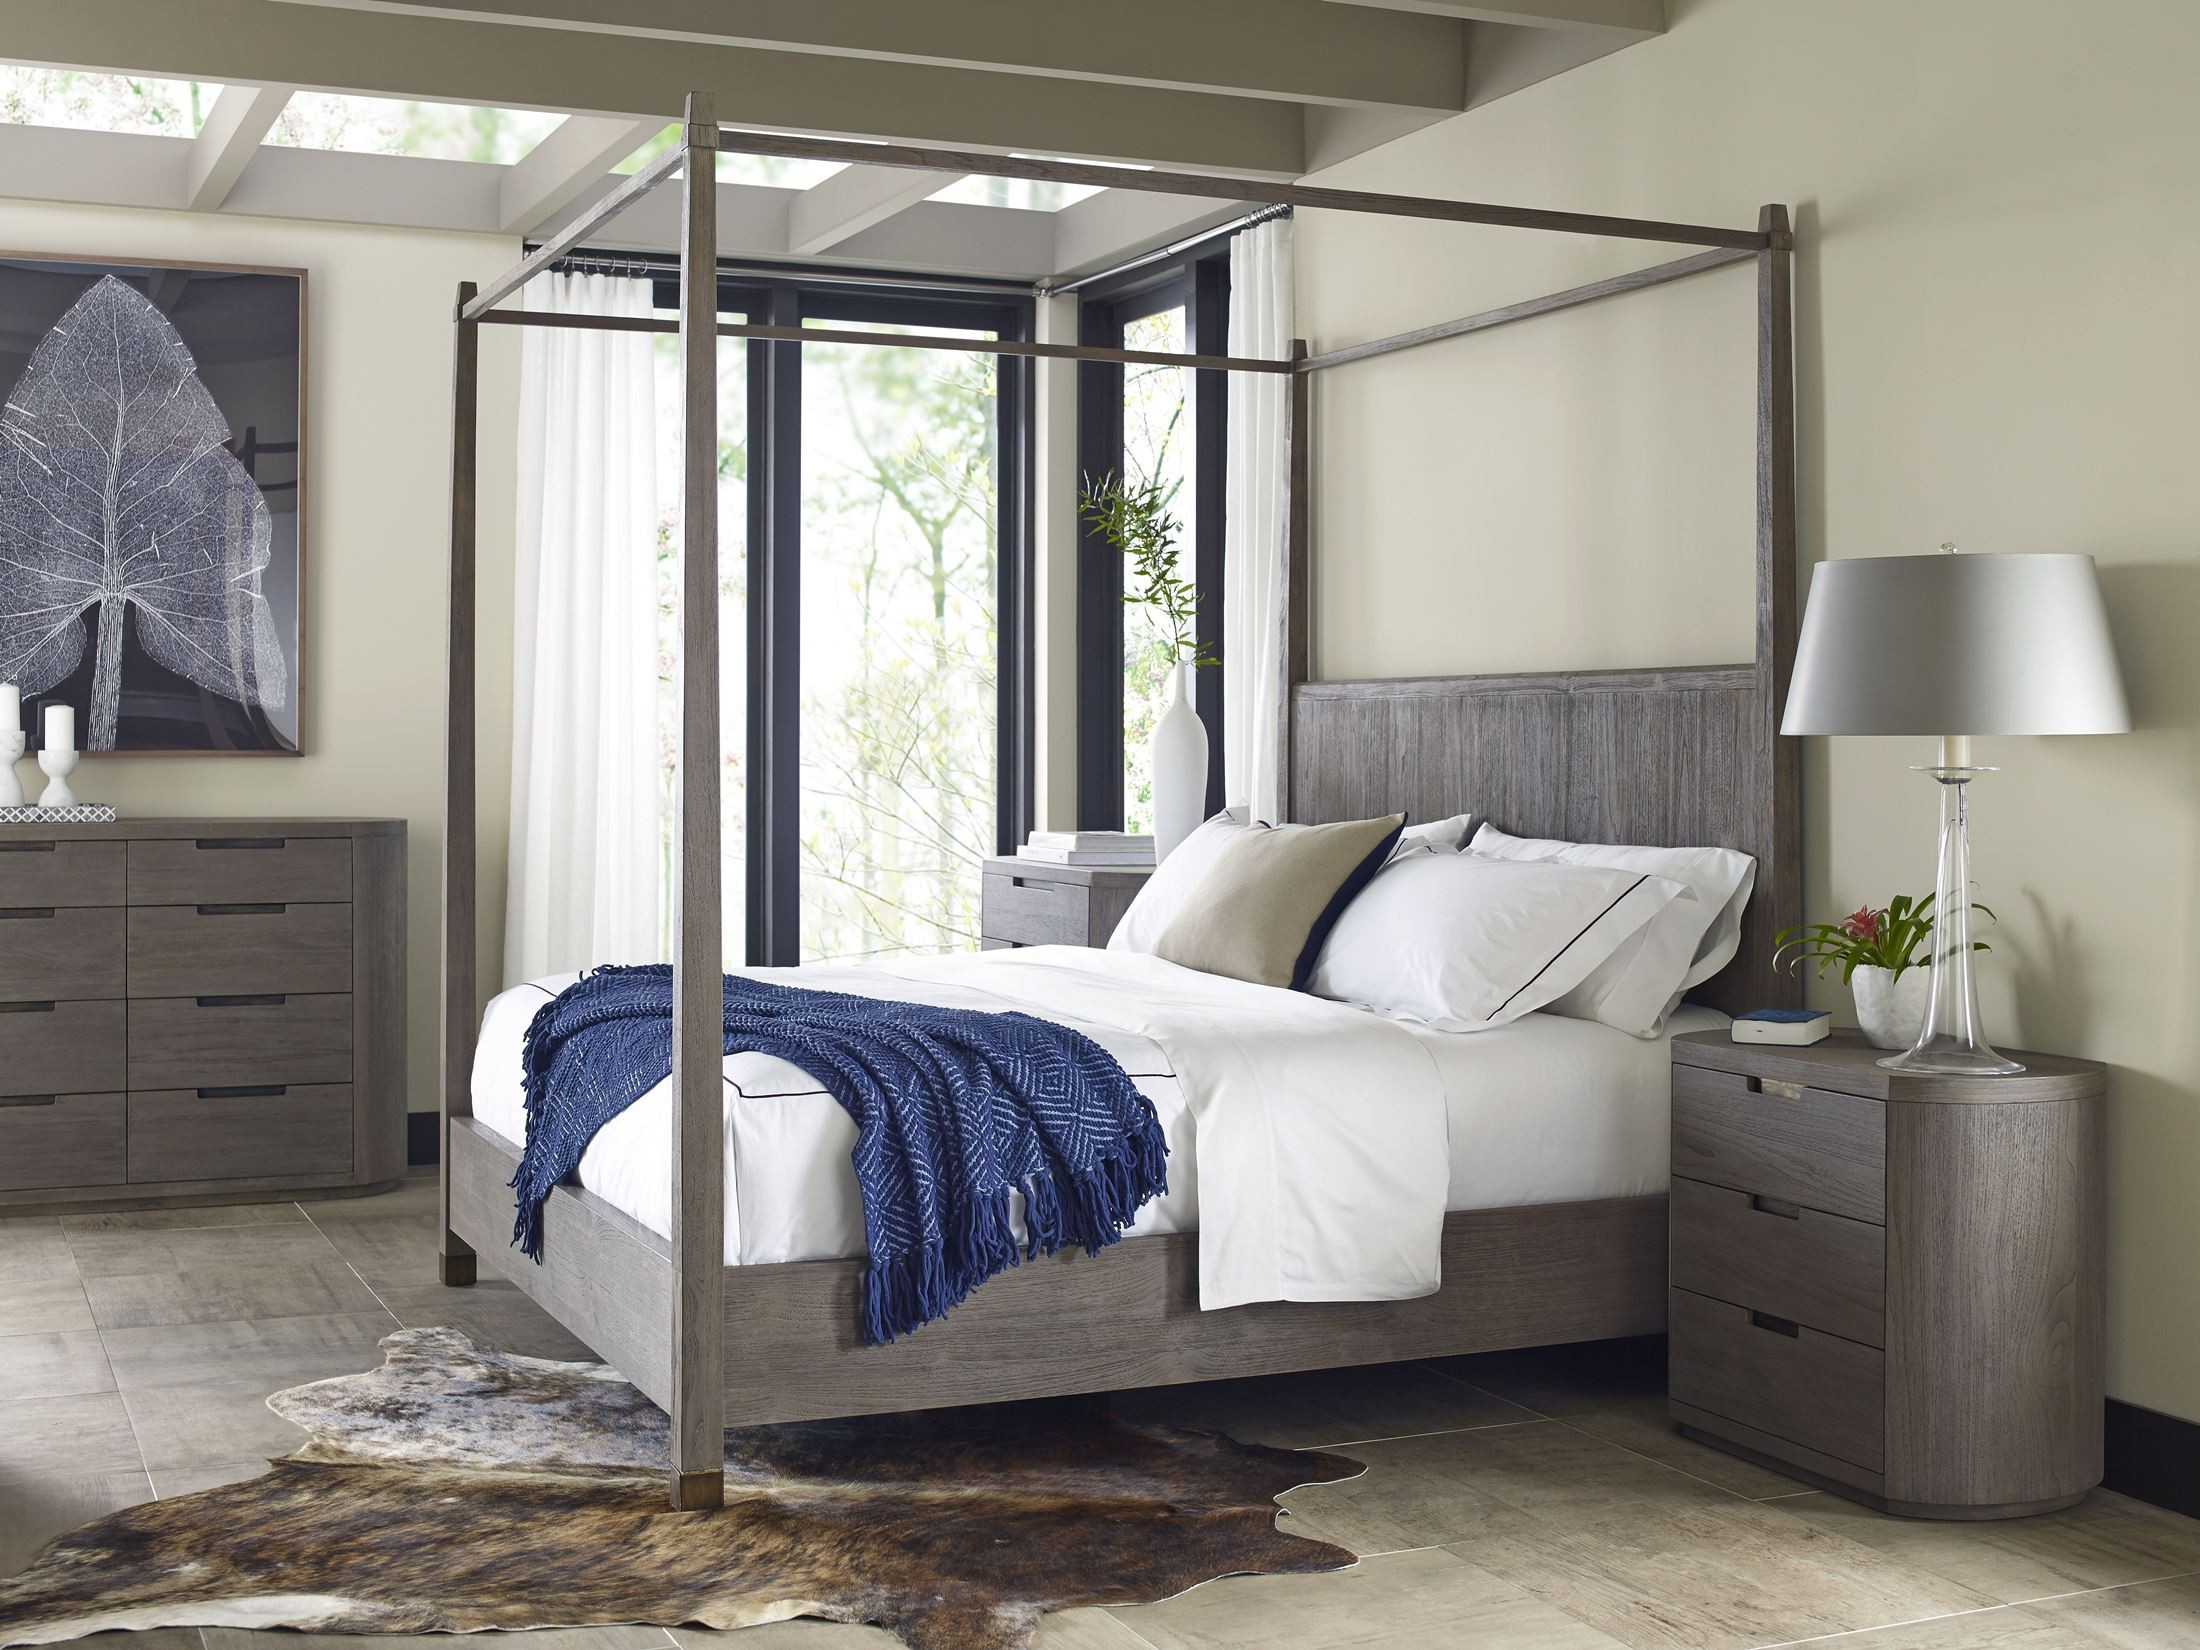 Palmer King Canopy Bed From Brownstone Pl006